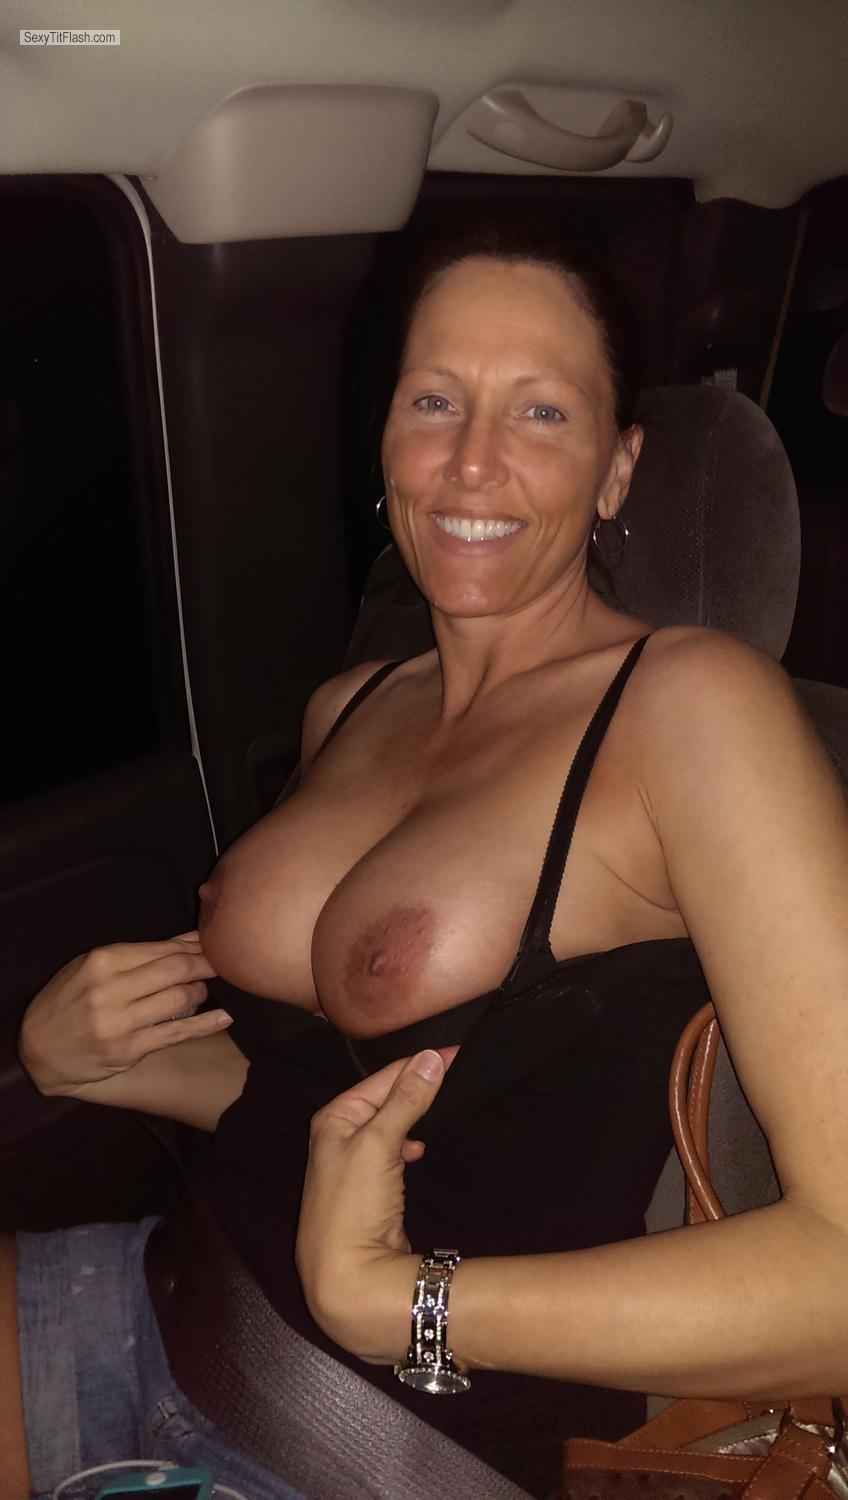 Tit Flash: Big Tits By IPhone - Topless JSSJ from United States